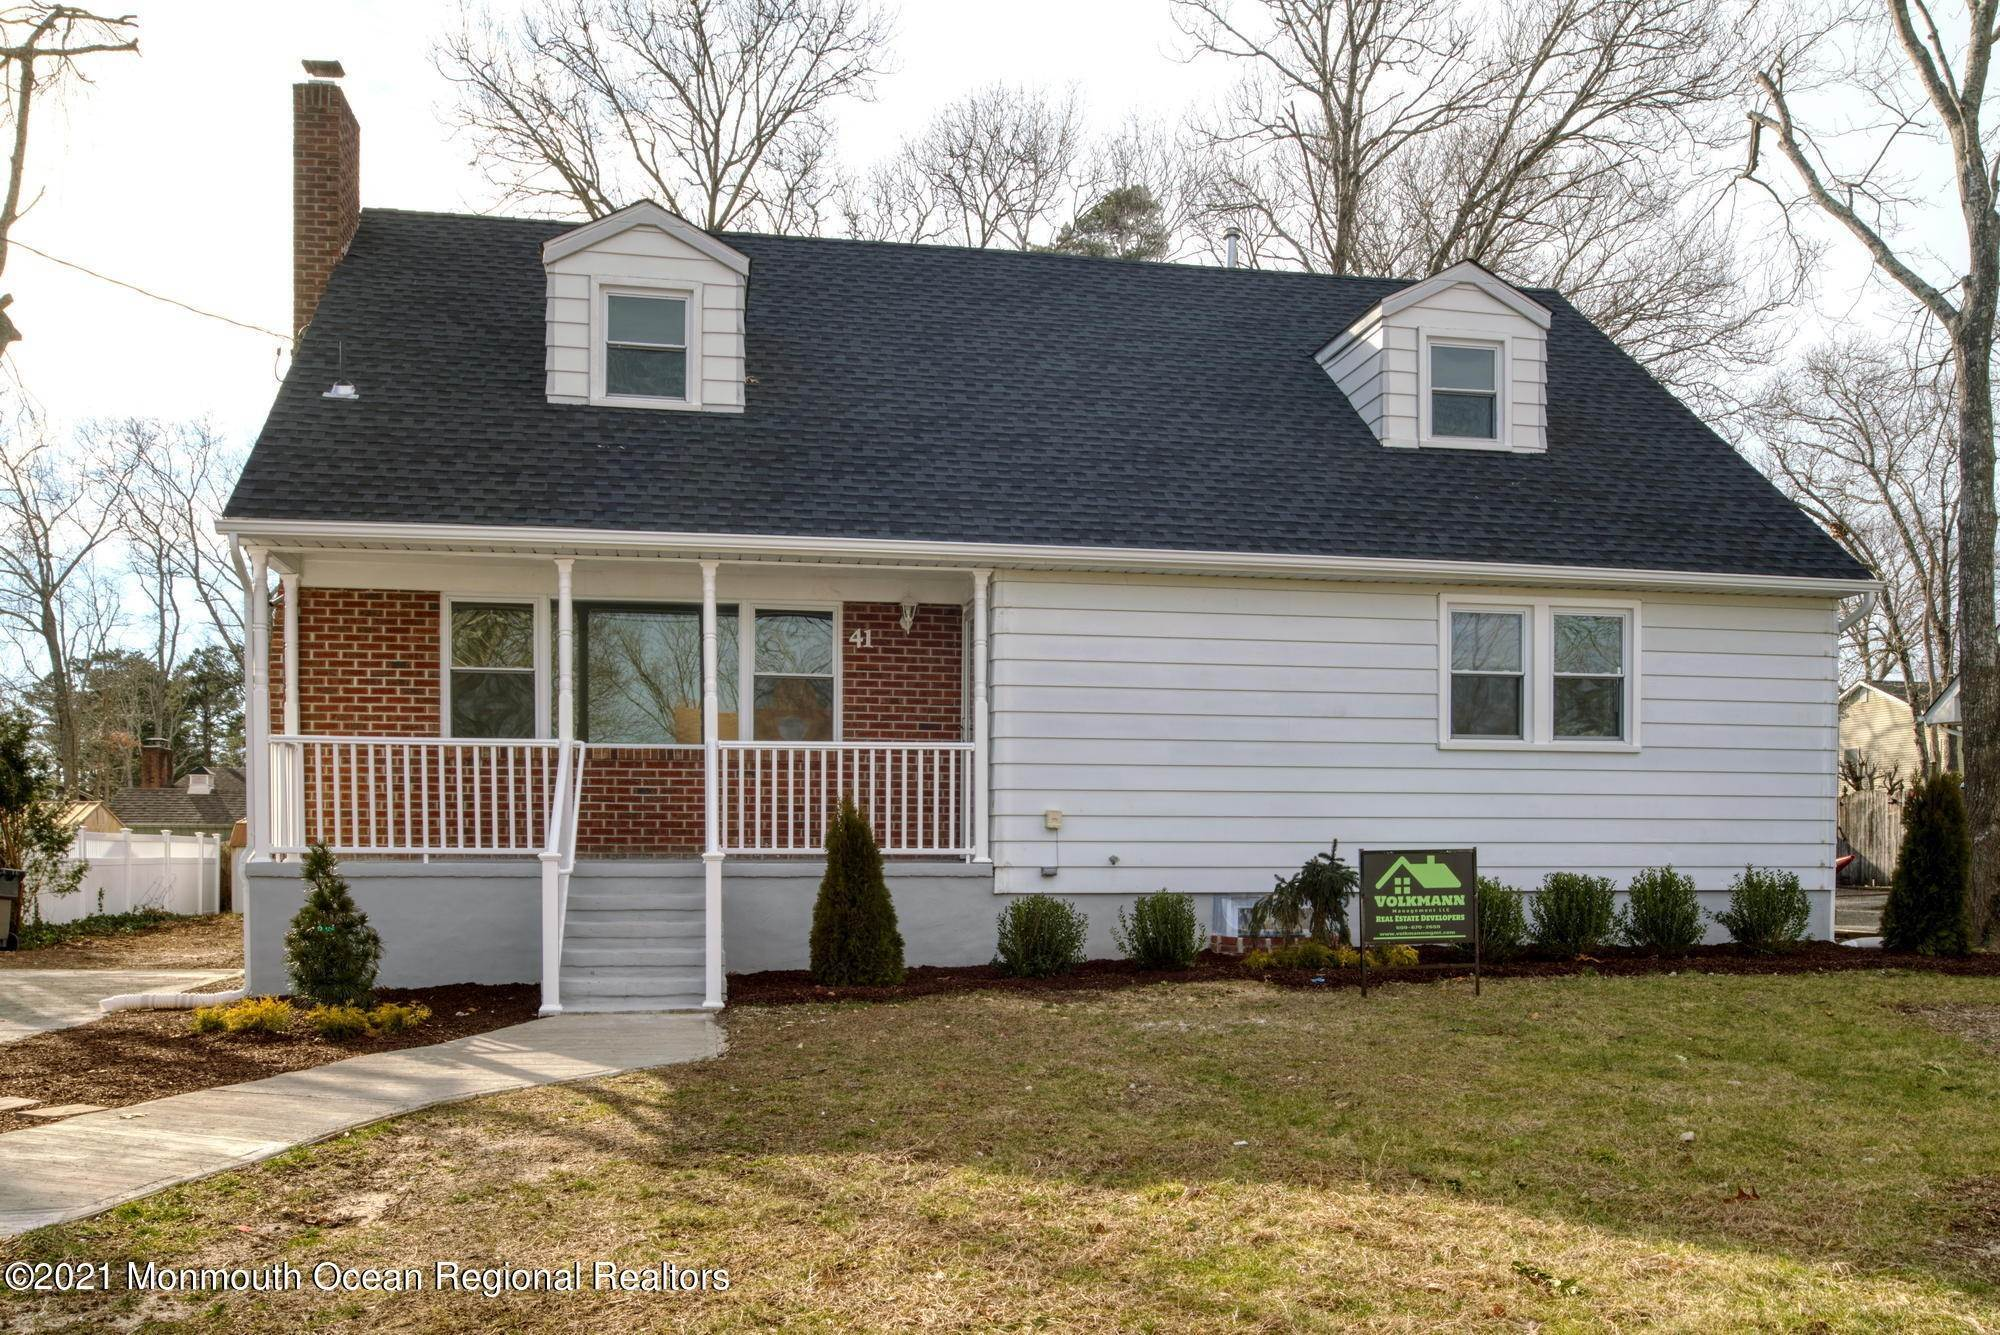 Single Family Homes for Sale at 41 Cornell Drive Manahawkin, New Jersey 08050 United States